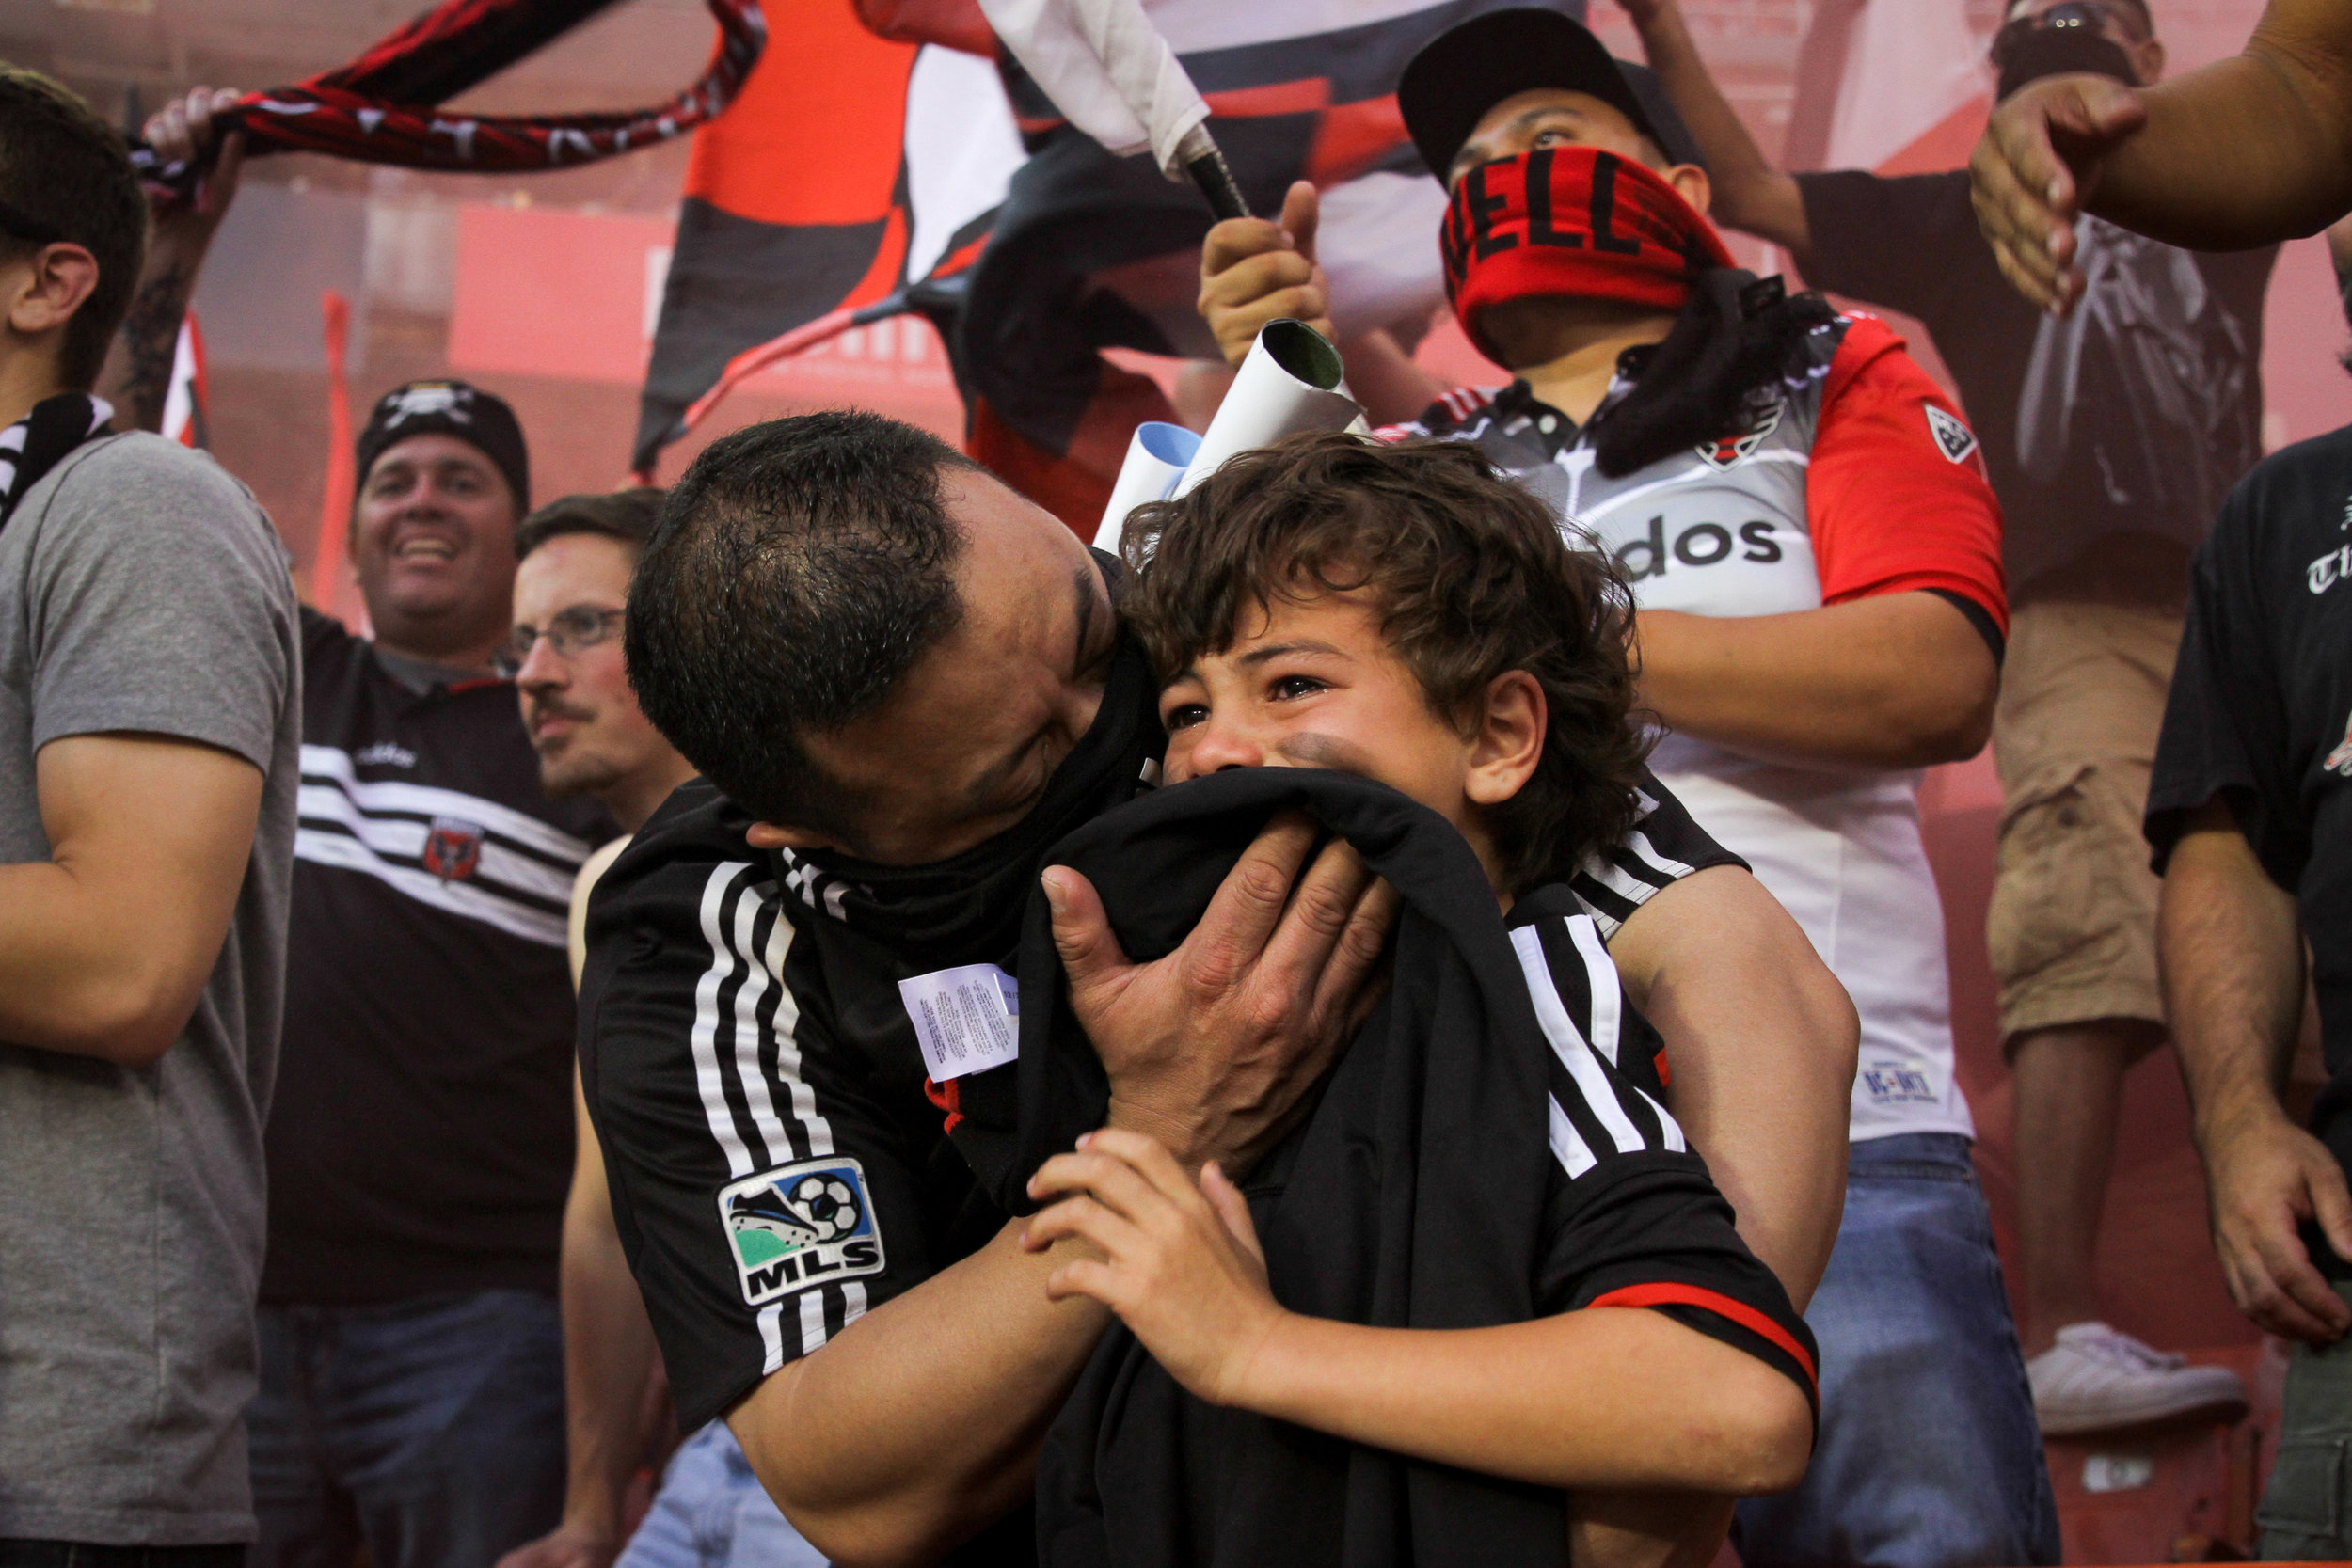 A man shields his son's face as smoke bombs cloud the air at DC United's last game at Robert F. Kennedy Stadium in Washington, D.C.. (Amanda Andrade-Rhoades/DC Refined)